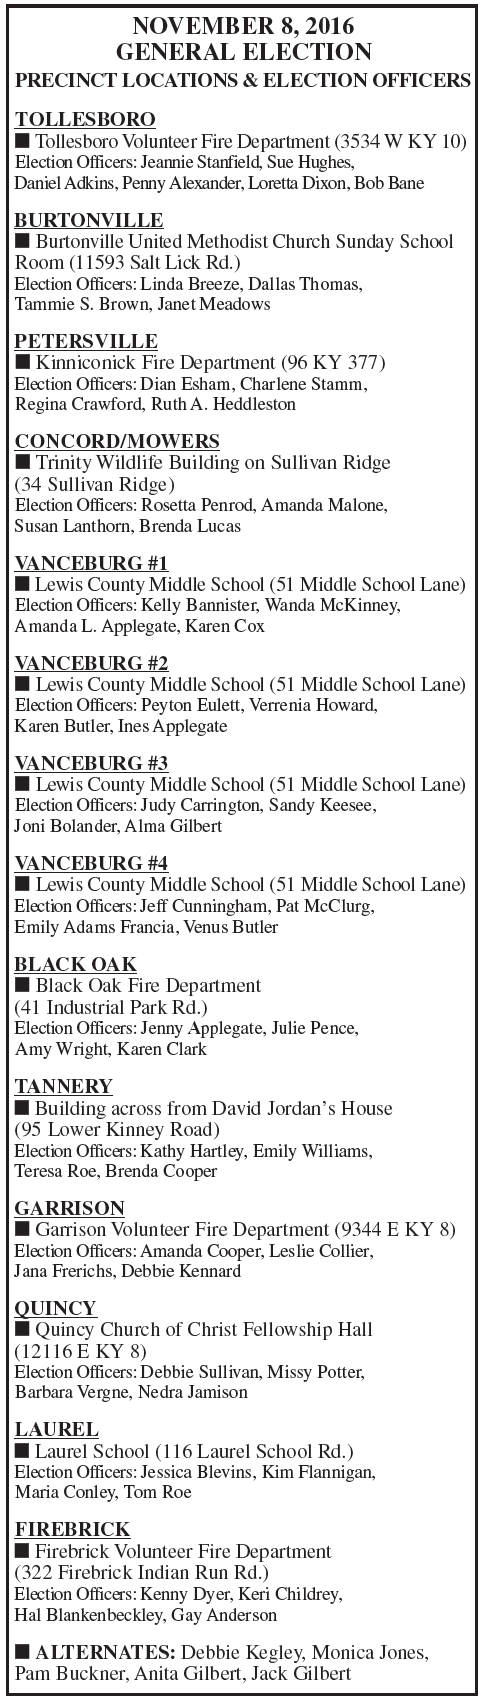 Precinct locations and election officers, Lewis County, General Election 2016